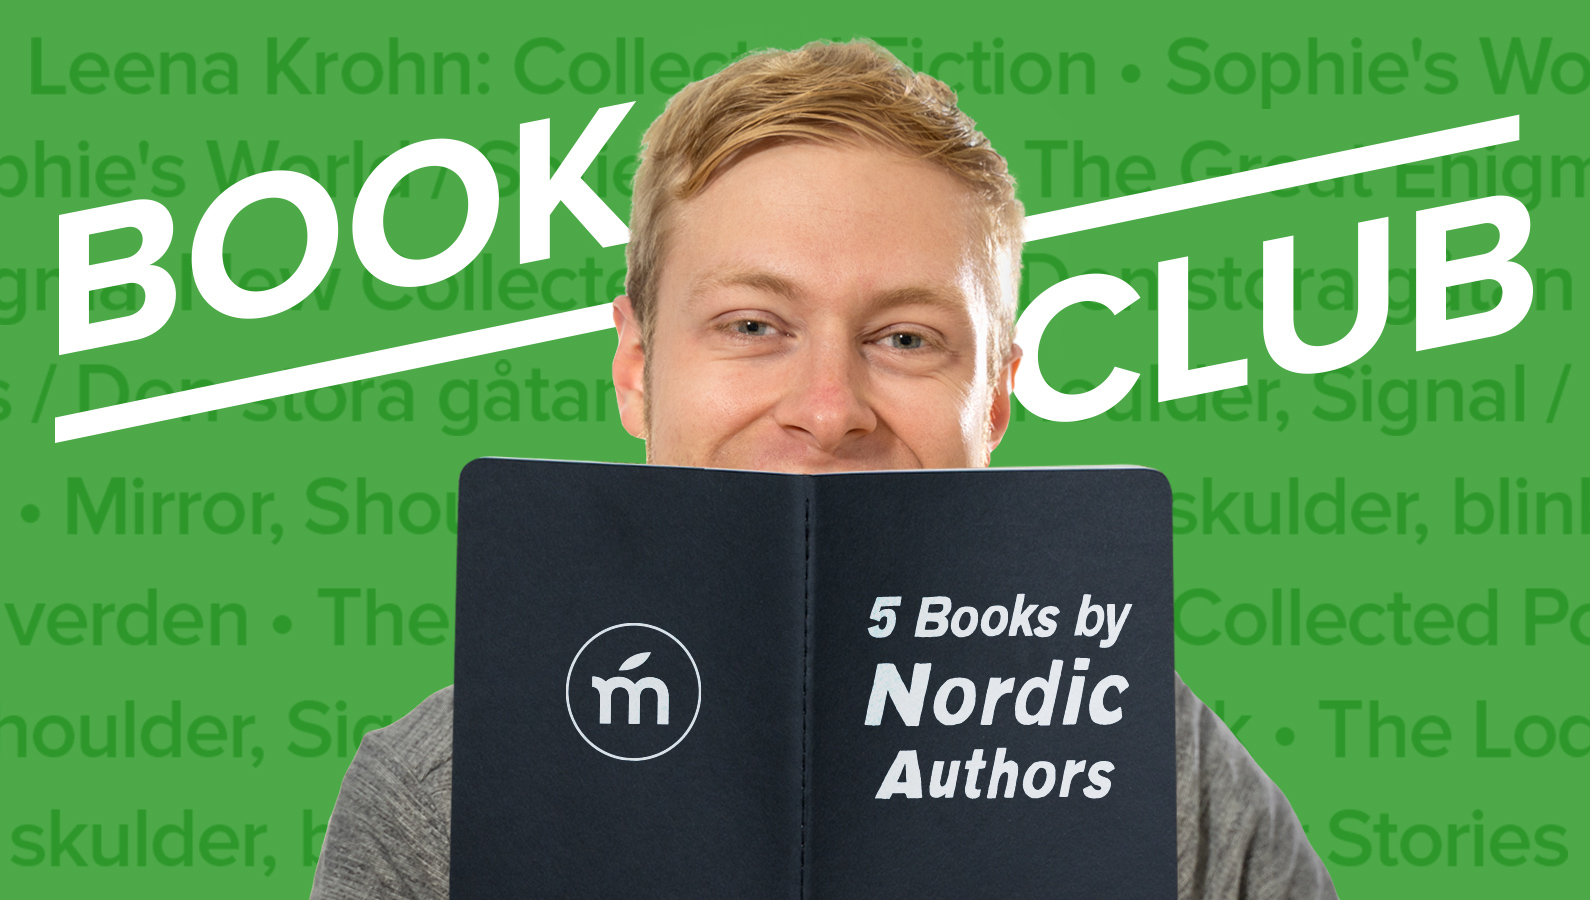 December book club: Nordic authors